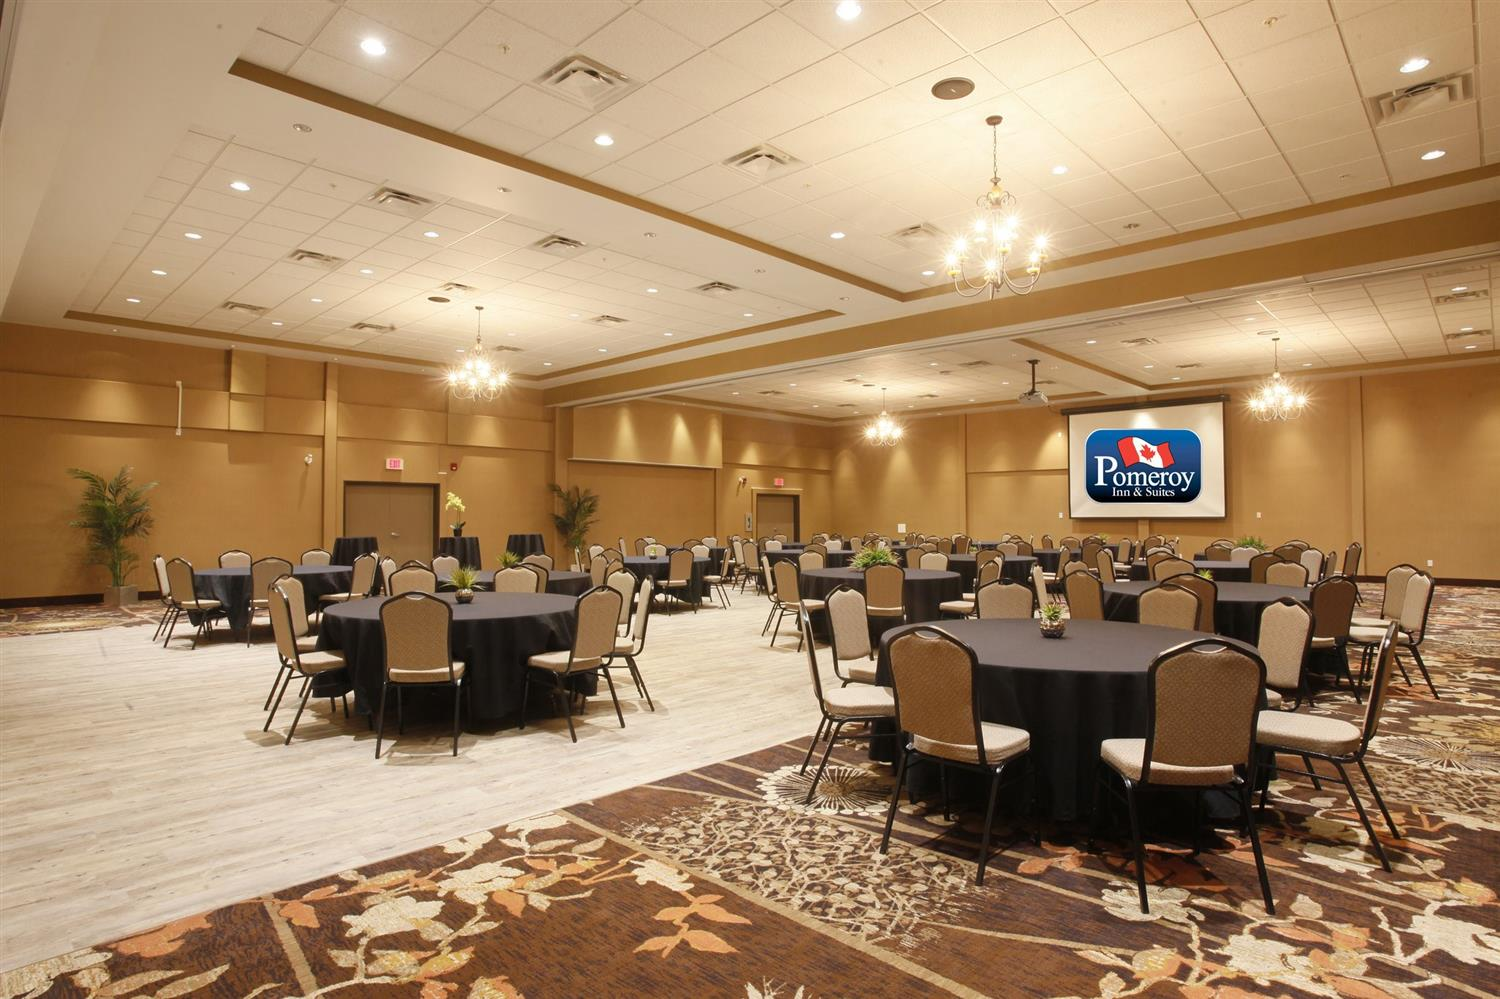 Ballroom - Pomeroy Inn & Suites at Olds College